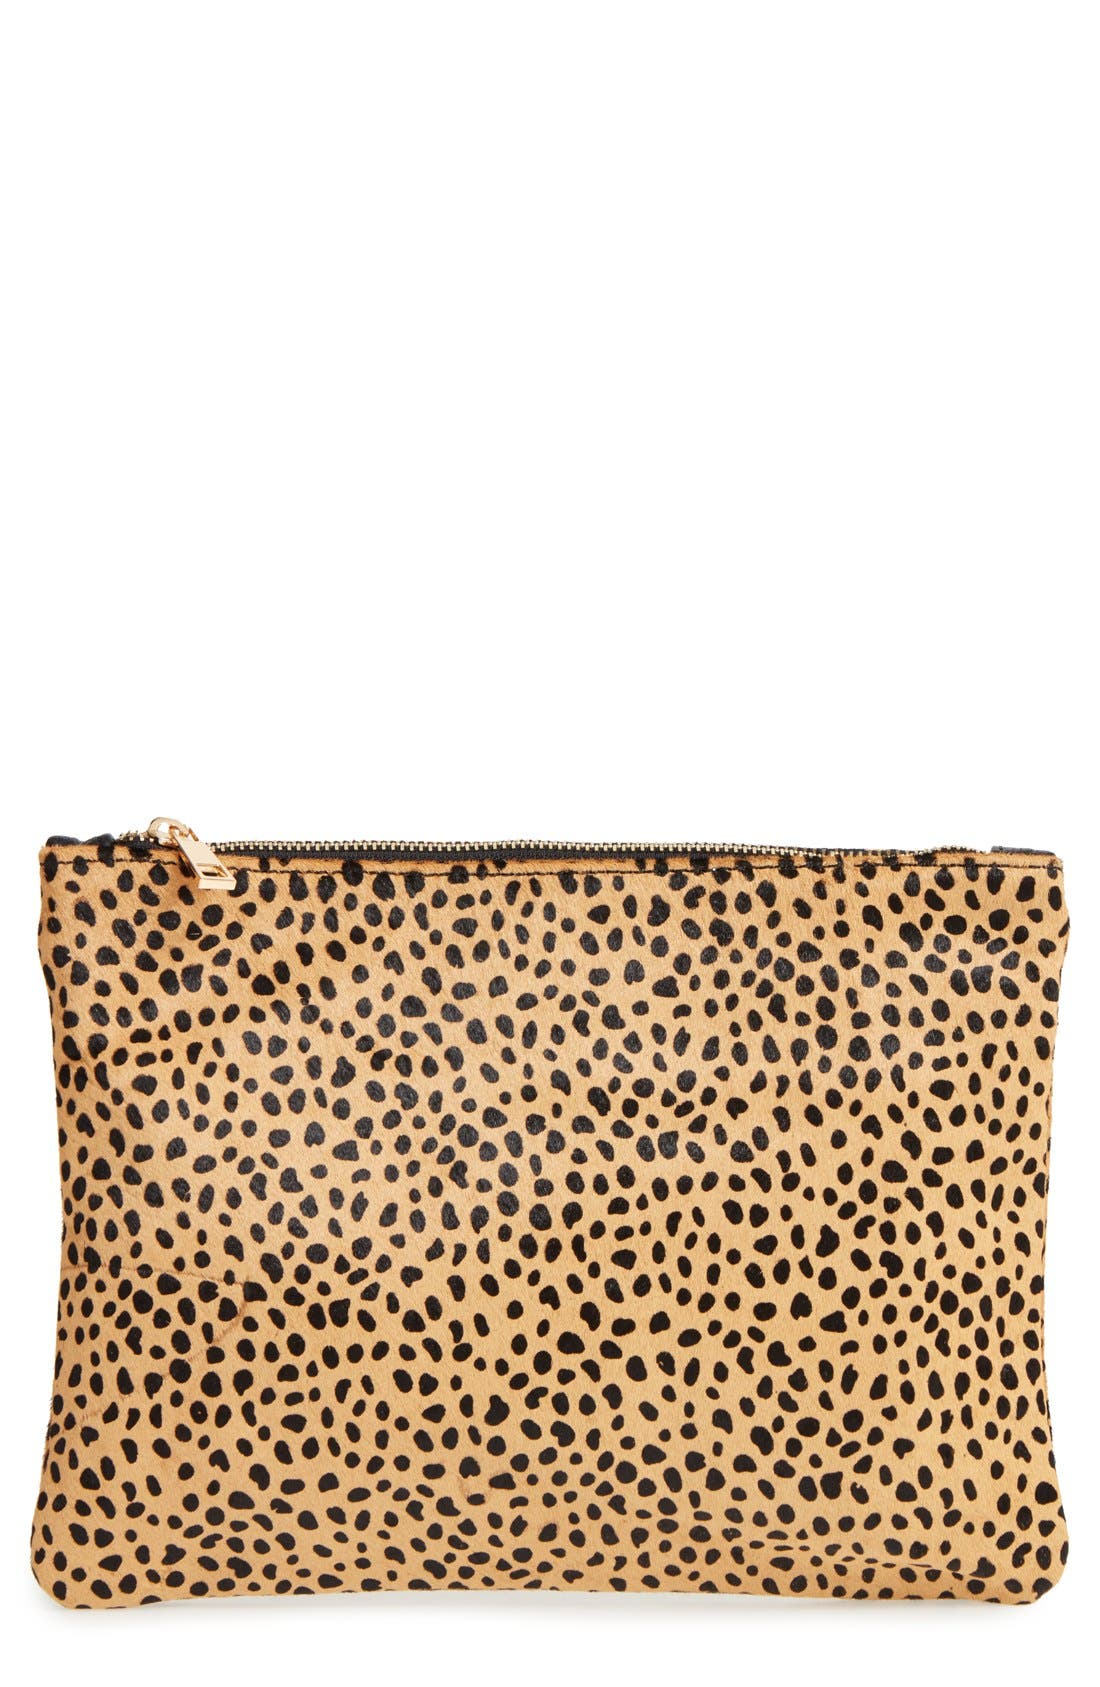 Alternate Image 1 Selected - Sole Society 'Dolce' Genuine Calf Hair Clutch